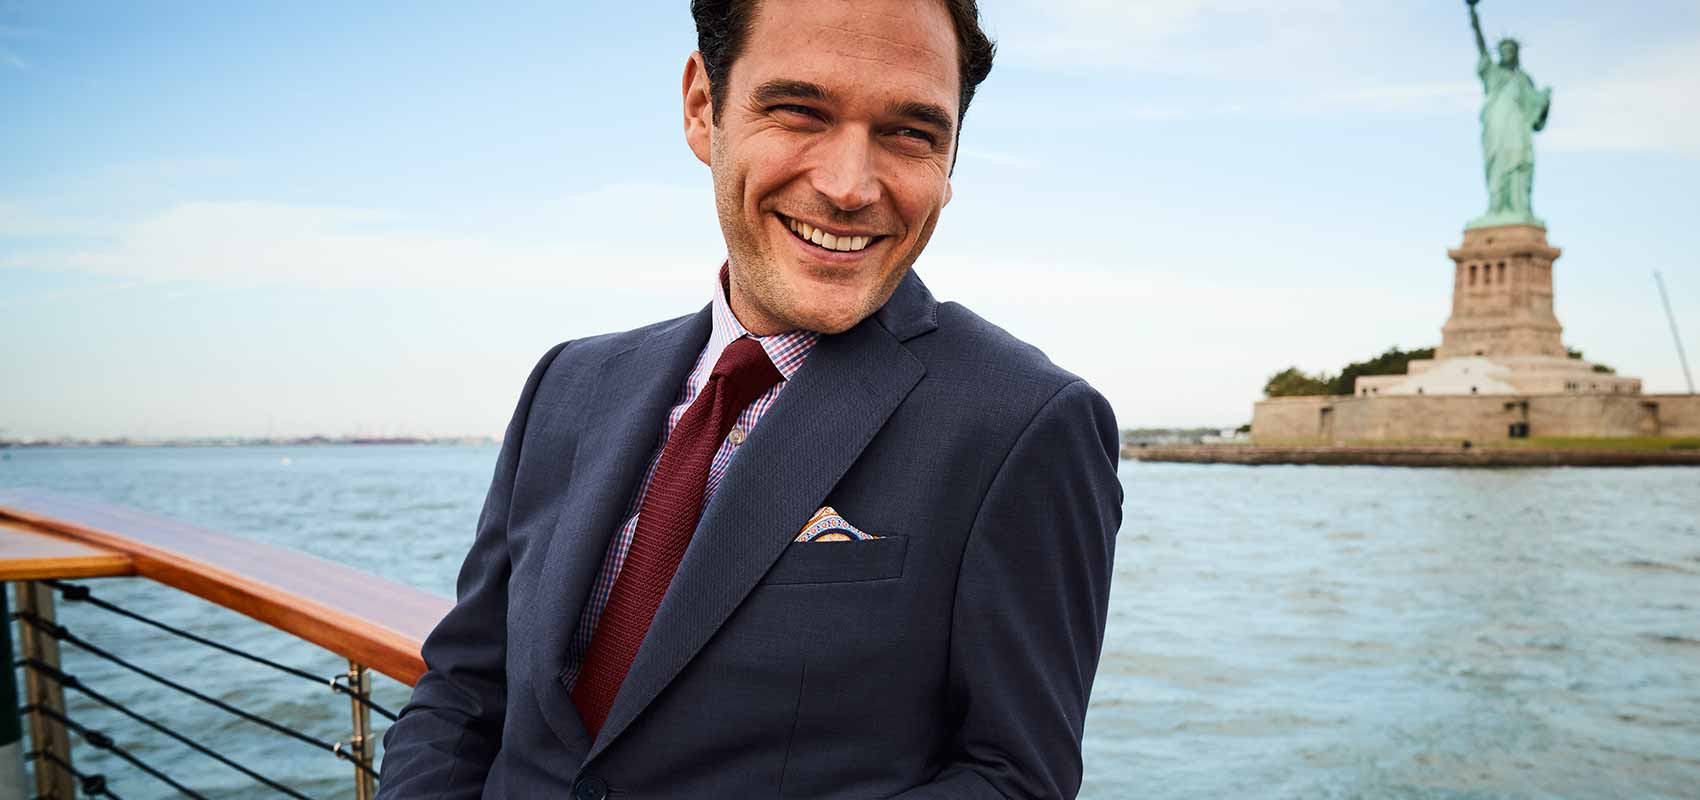 Charles Tyrwhitt sharkskin suits